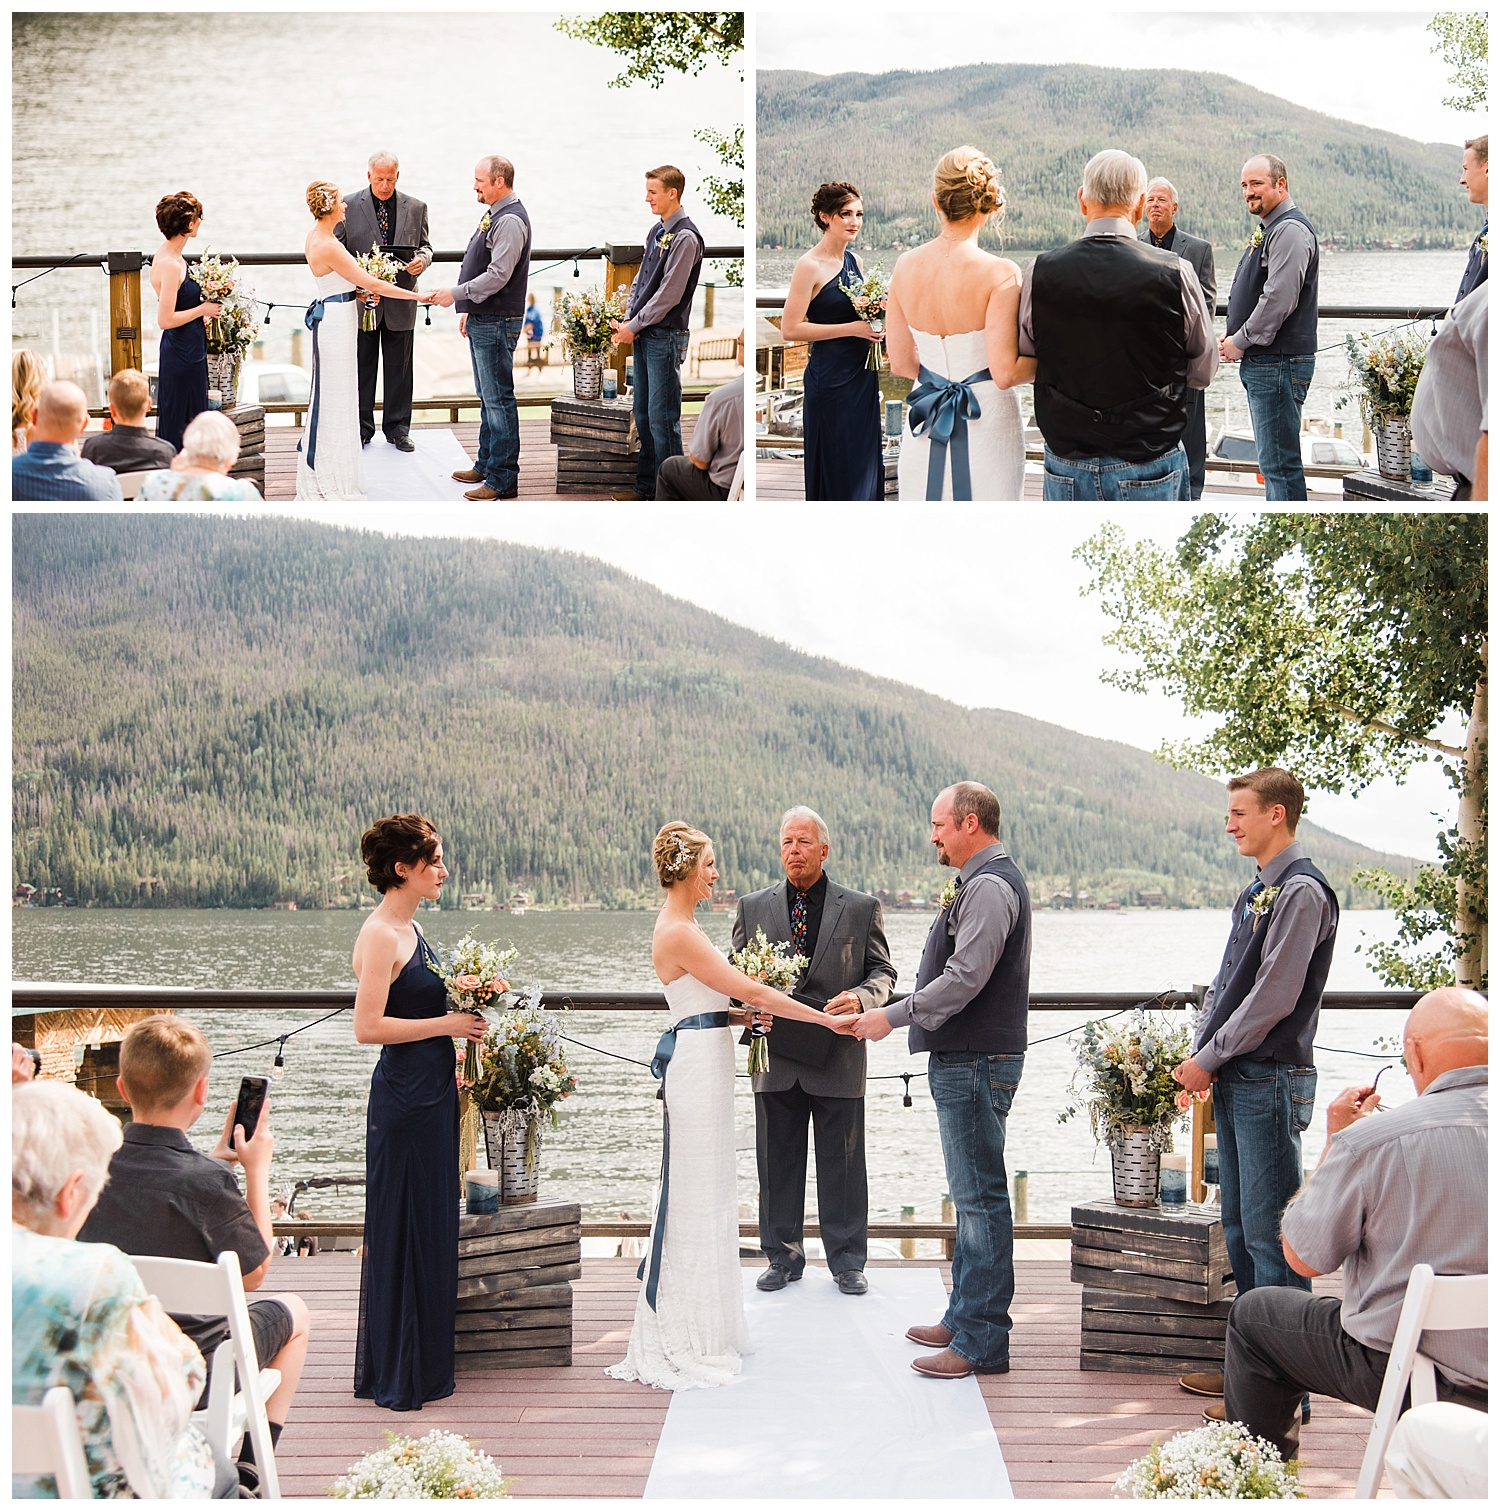 Western_Riviera_Wedding_Venue_Lake_Grandby_Colorado_Apollo_Fields_40.jpg